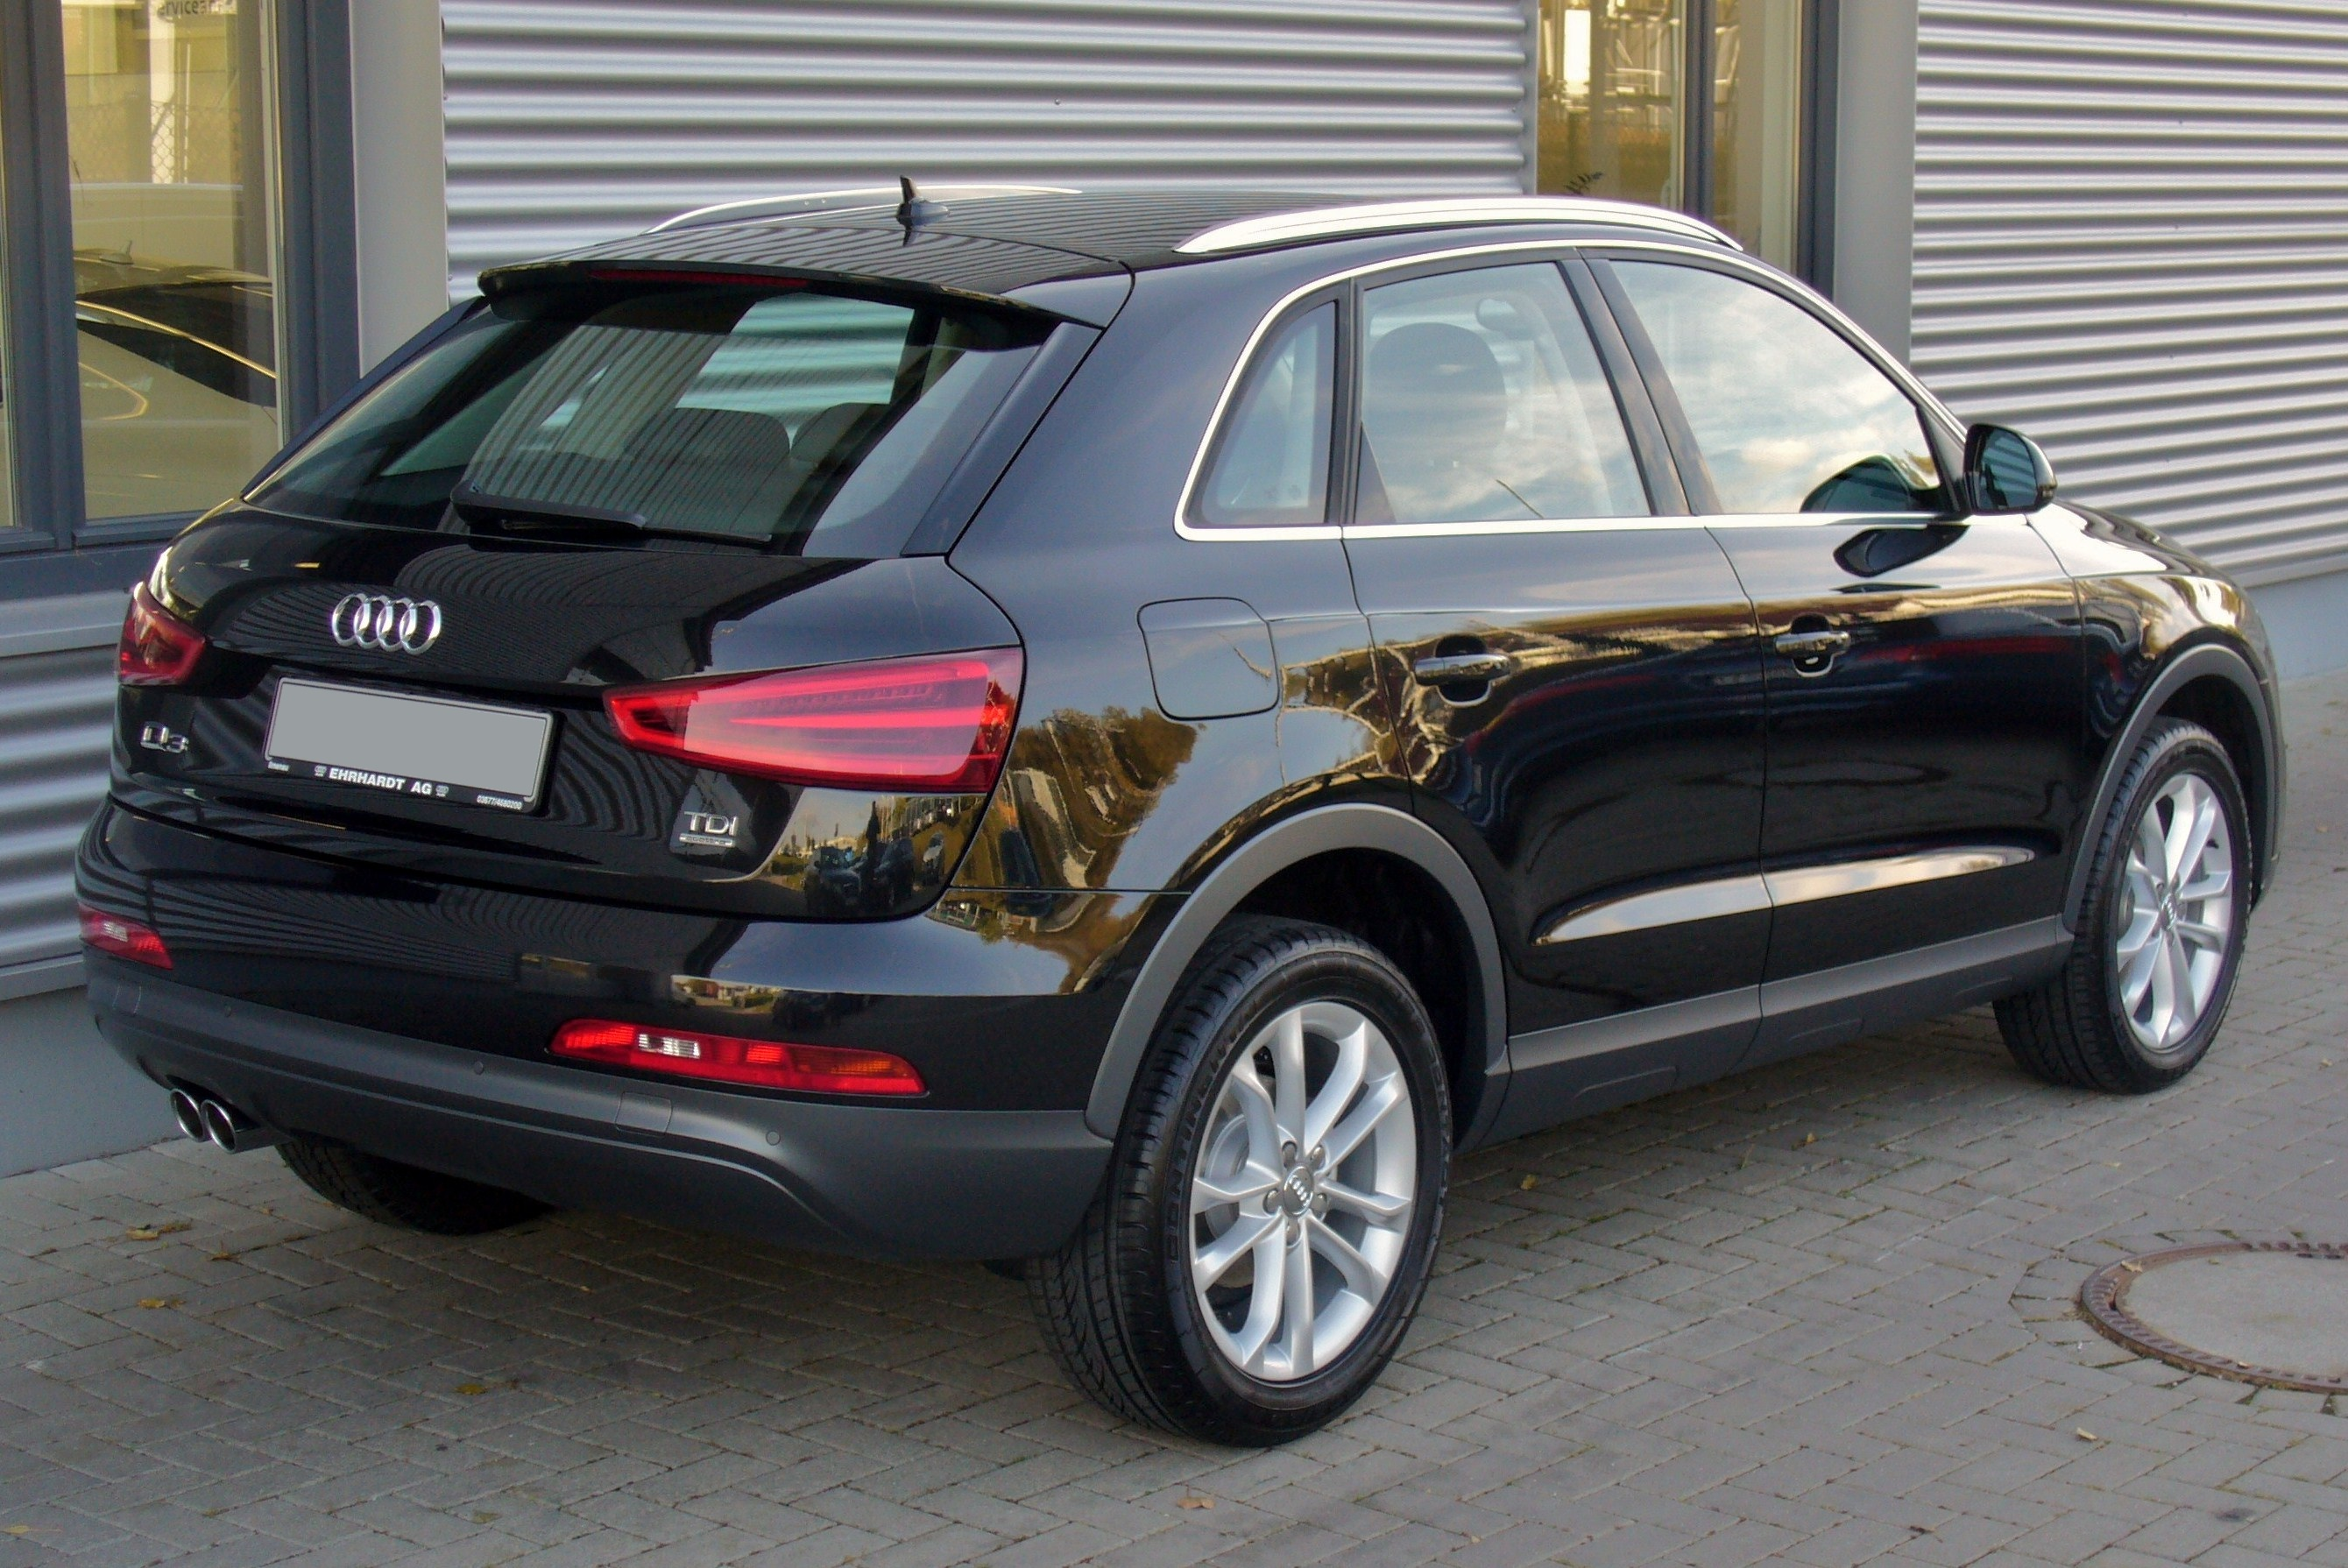 fichier audi q3 2 0 tdi quattro s tronic phantomschwarz heck jpg wikip dia. Black Bedroom Furniture Sets. Home Design Ideas